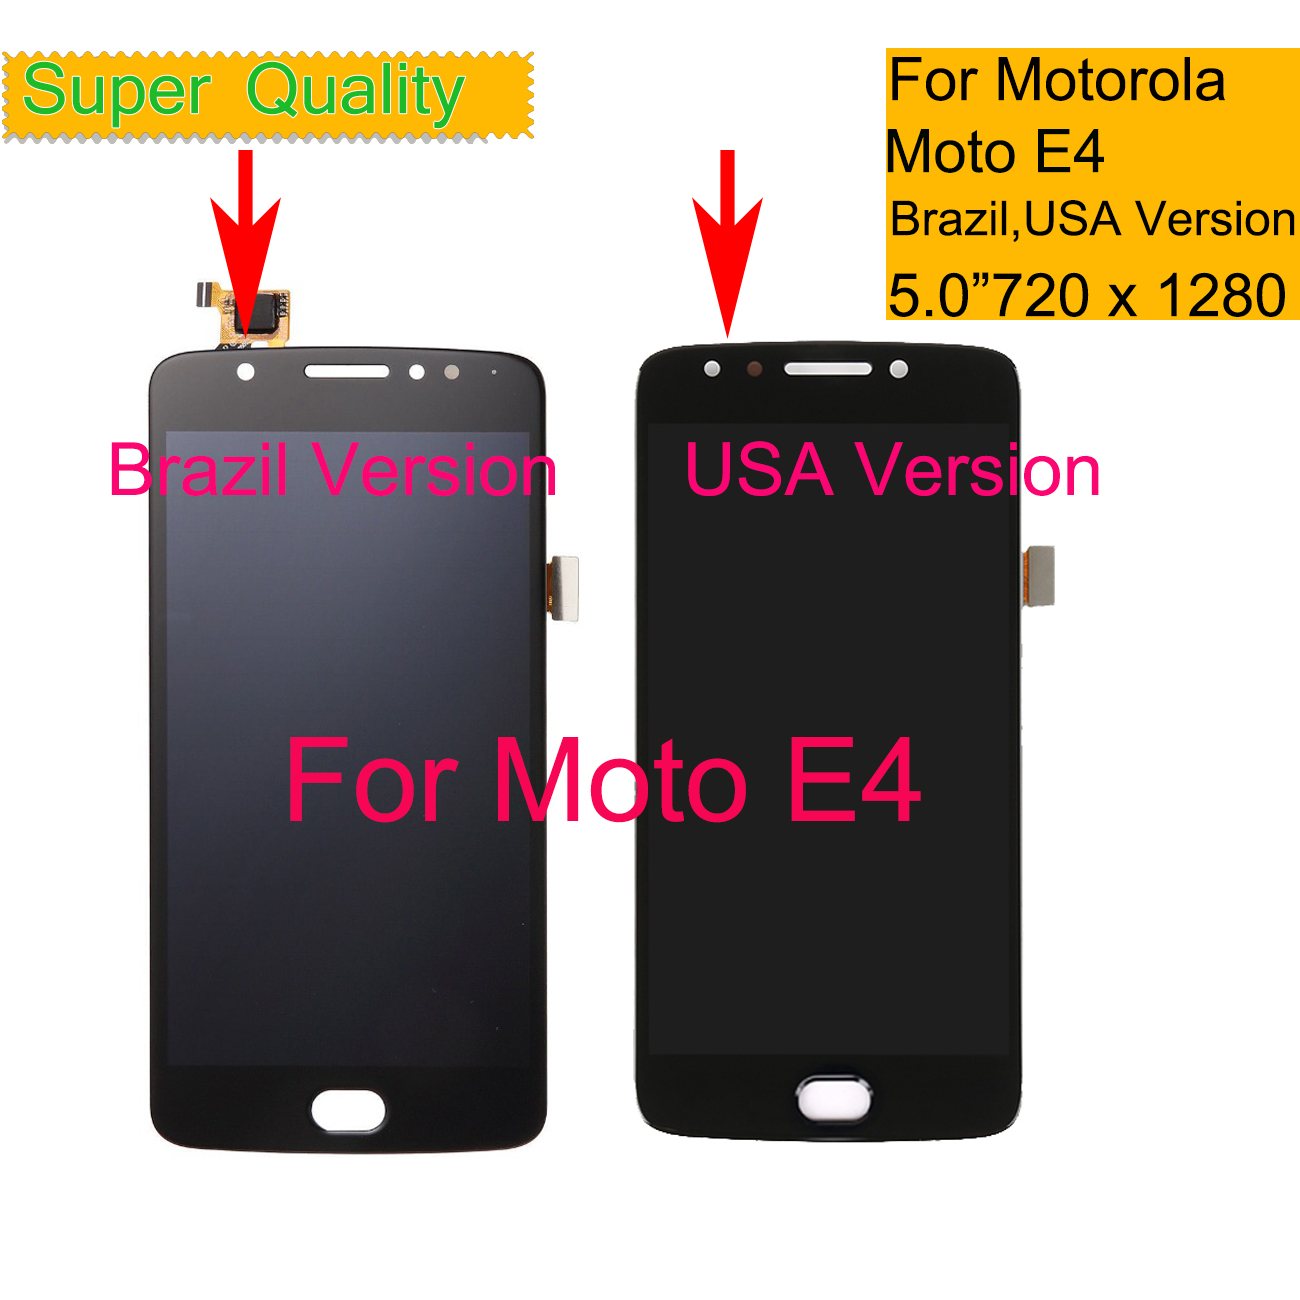 LCD <font><b>Display</b></font> For Motorola <font><b>Moto</b></font> <font><b>E4</b></font> <font><b>XT1763</b></font> XT1762 XT1772 LCD <font><b>Display</b></font> Touch Screen Panel with Digitizer Assembly Replacement image